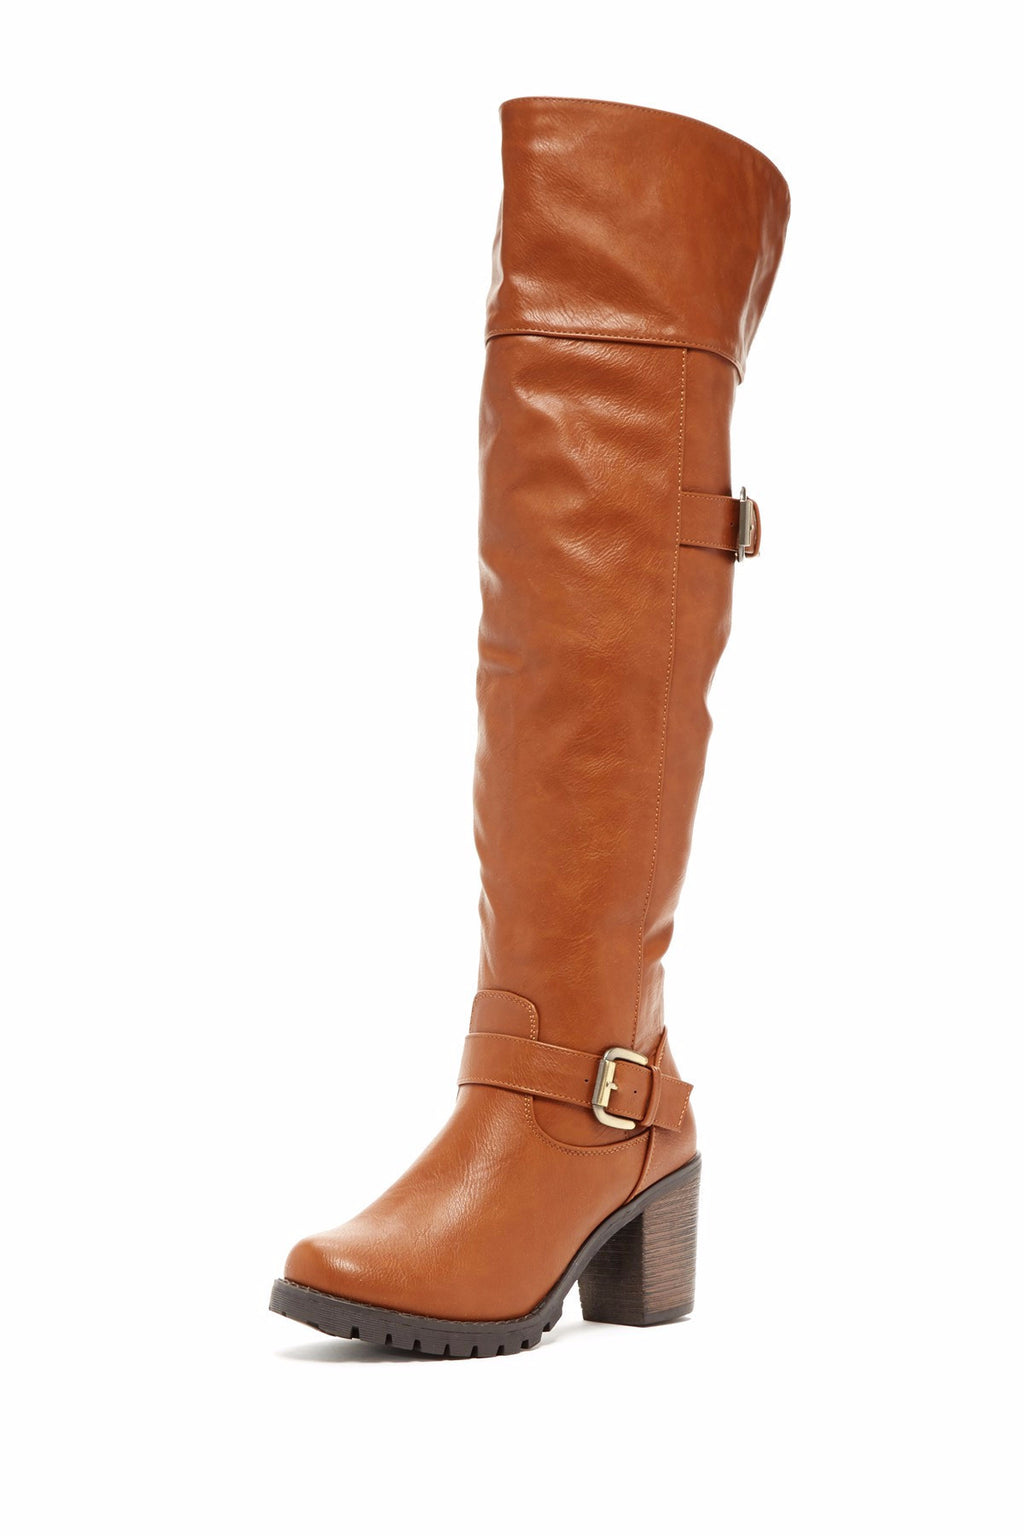 Elegant Tres Shaft Over the Knee Boot - LURE Boutique